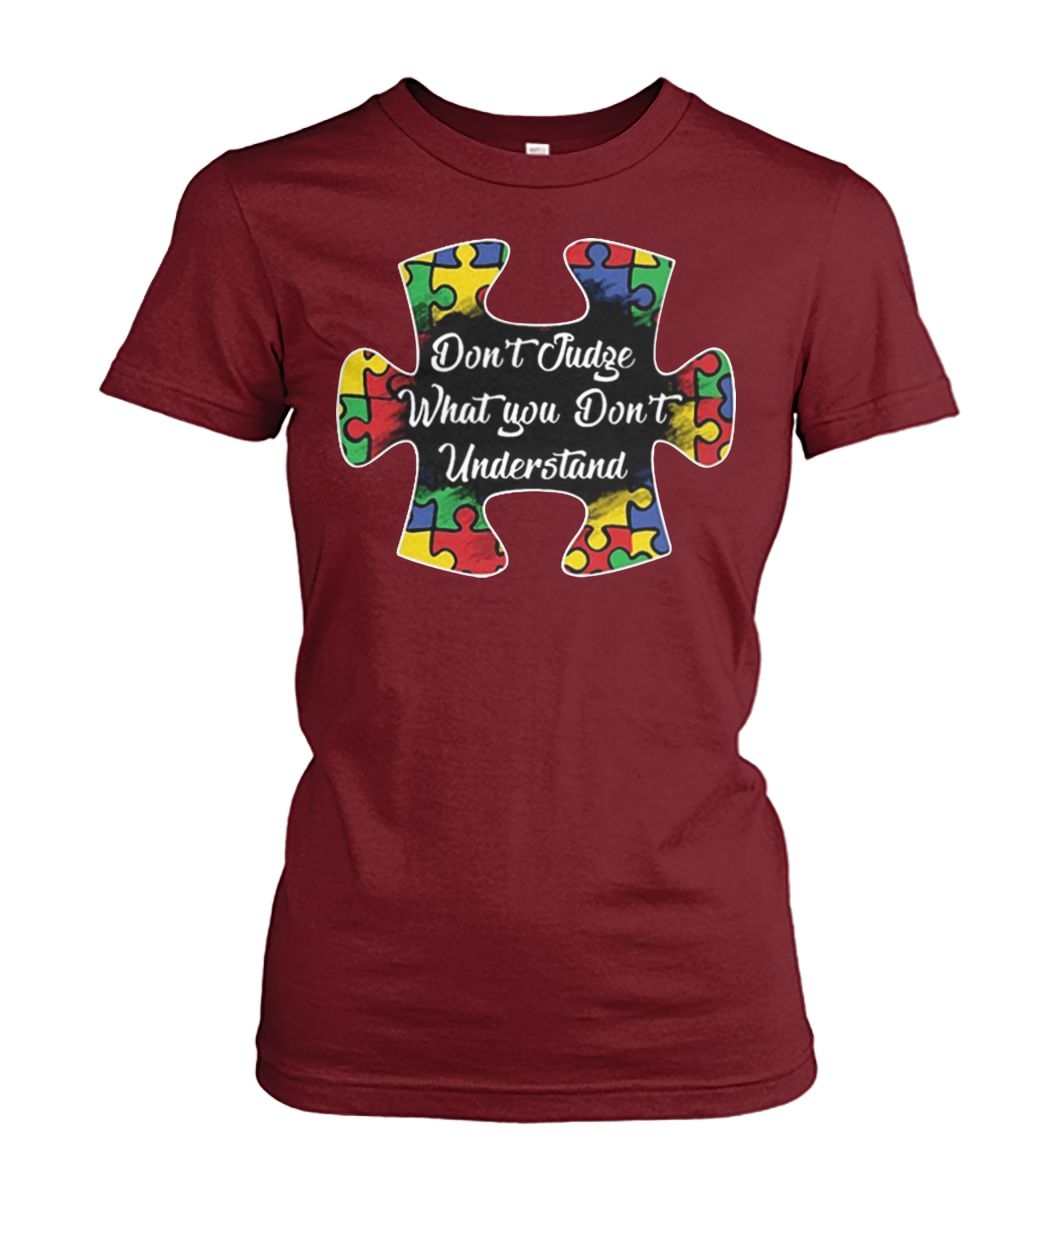 Don't judge what you don't understand autism awareness women's crew tee